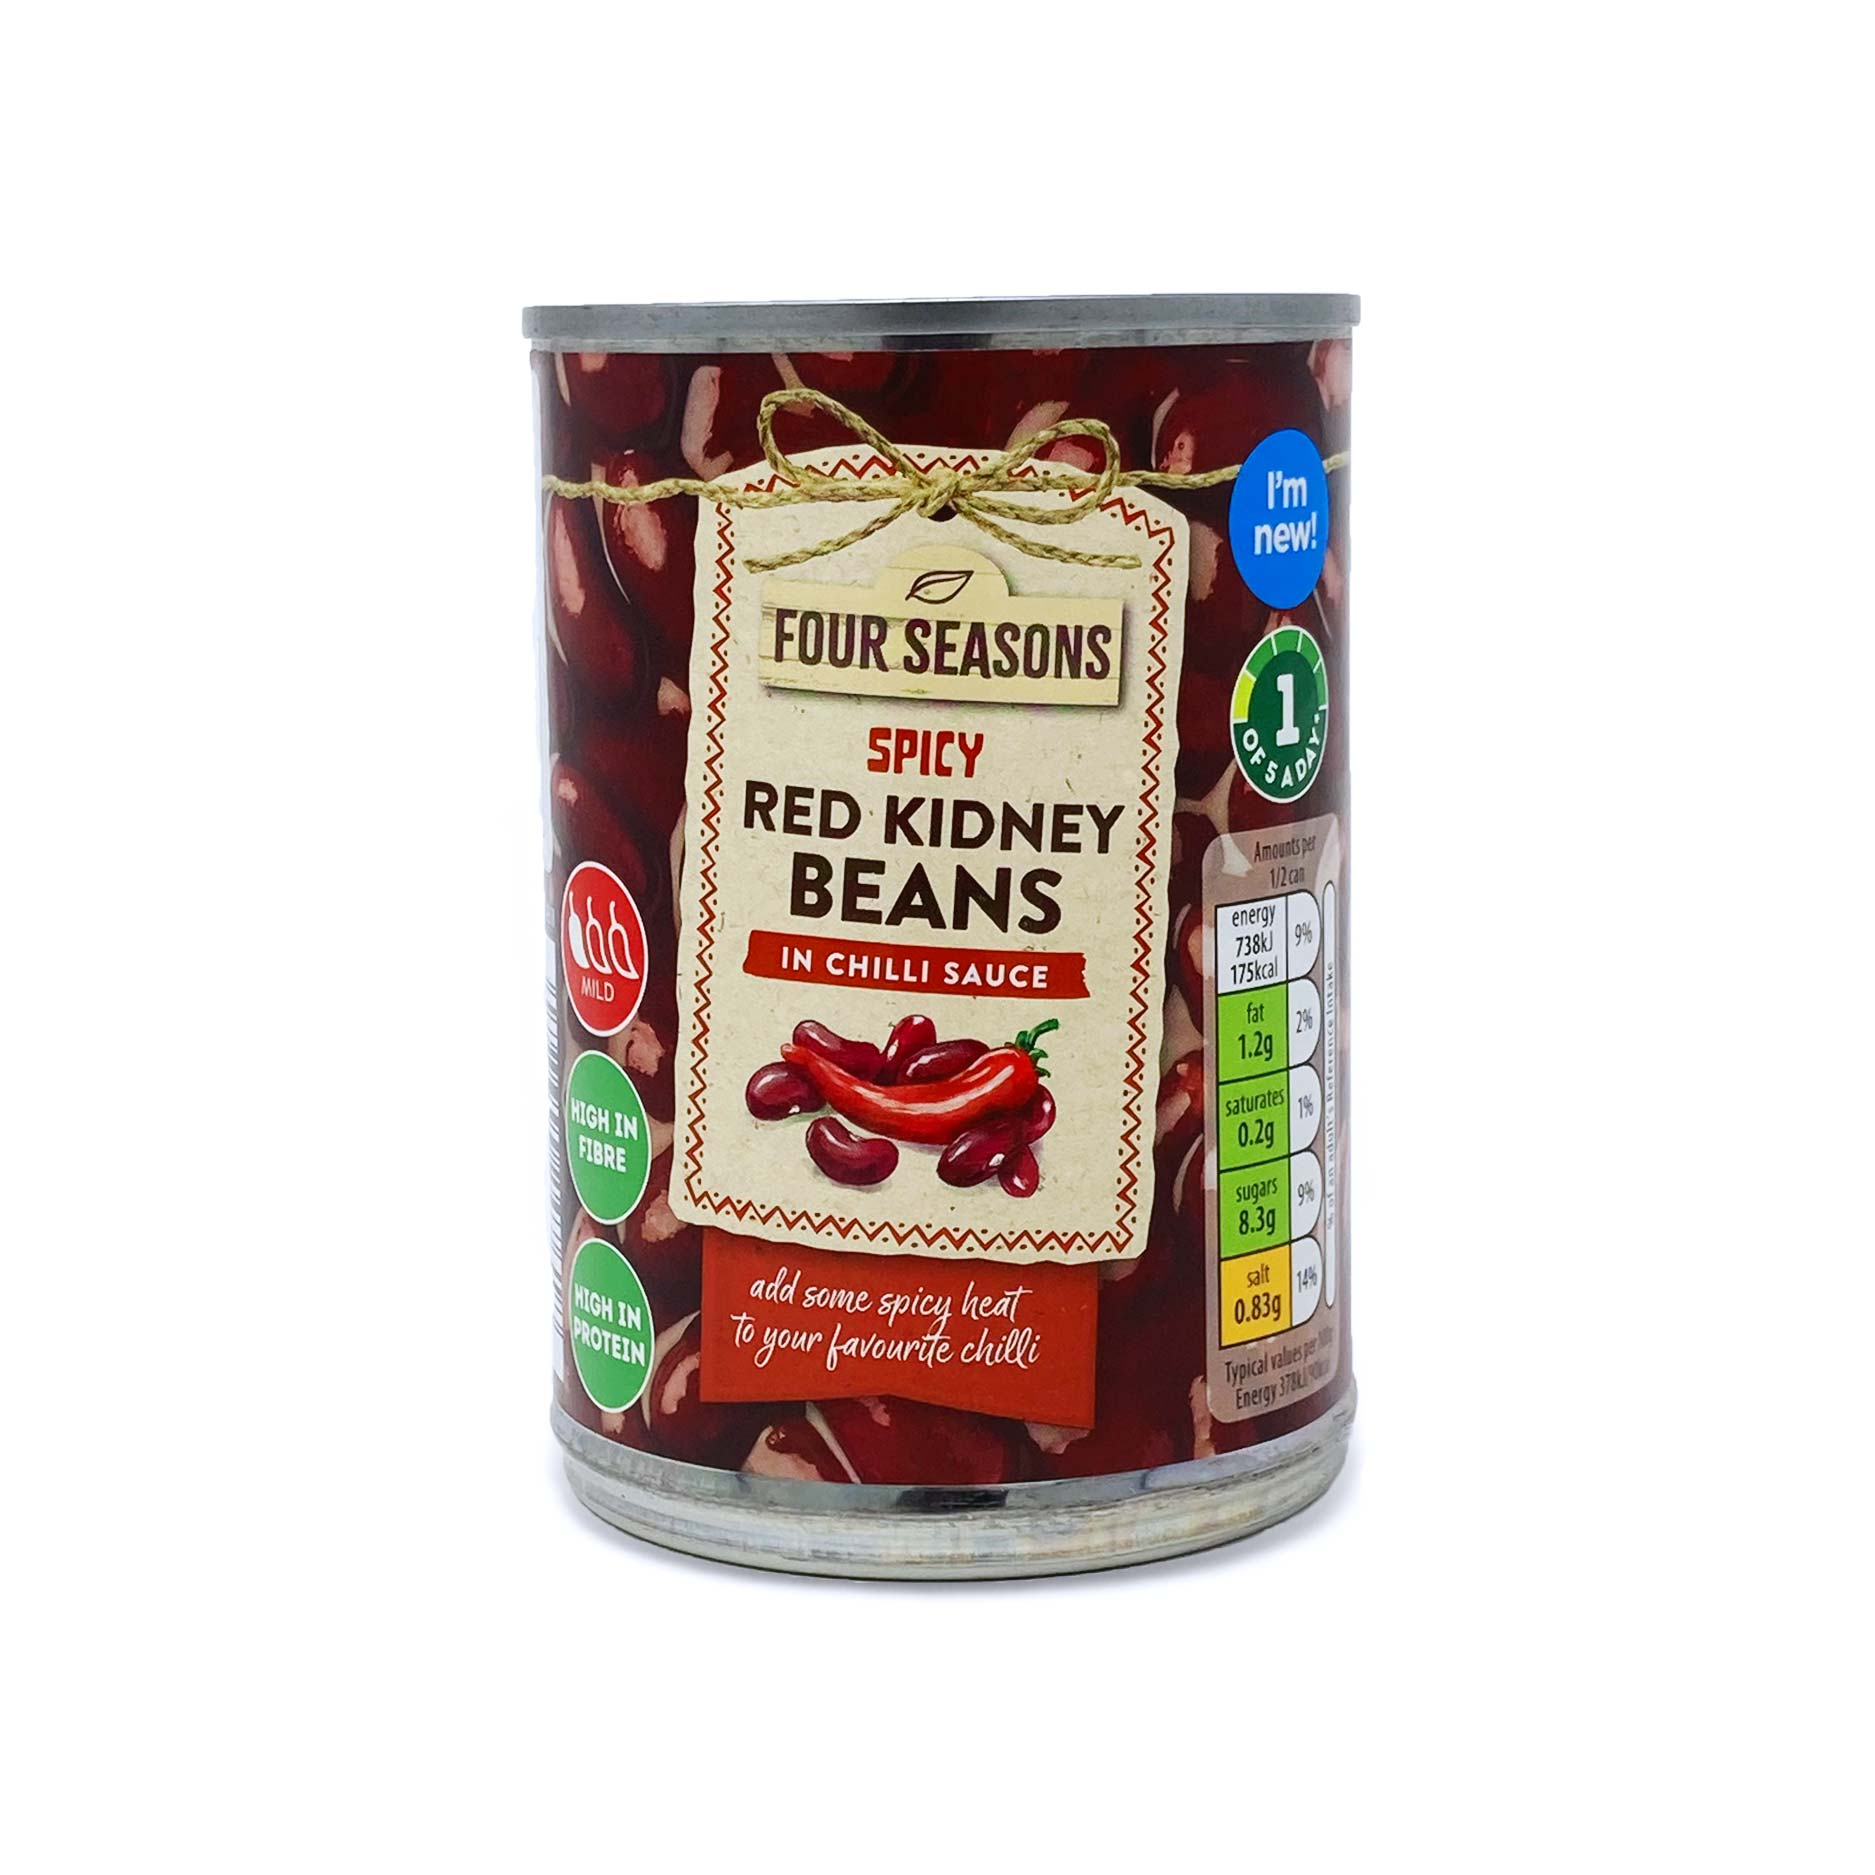 Four Seasons Spicy Red Kidney Beans In Chilli Sauce 390g Aldi